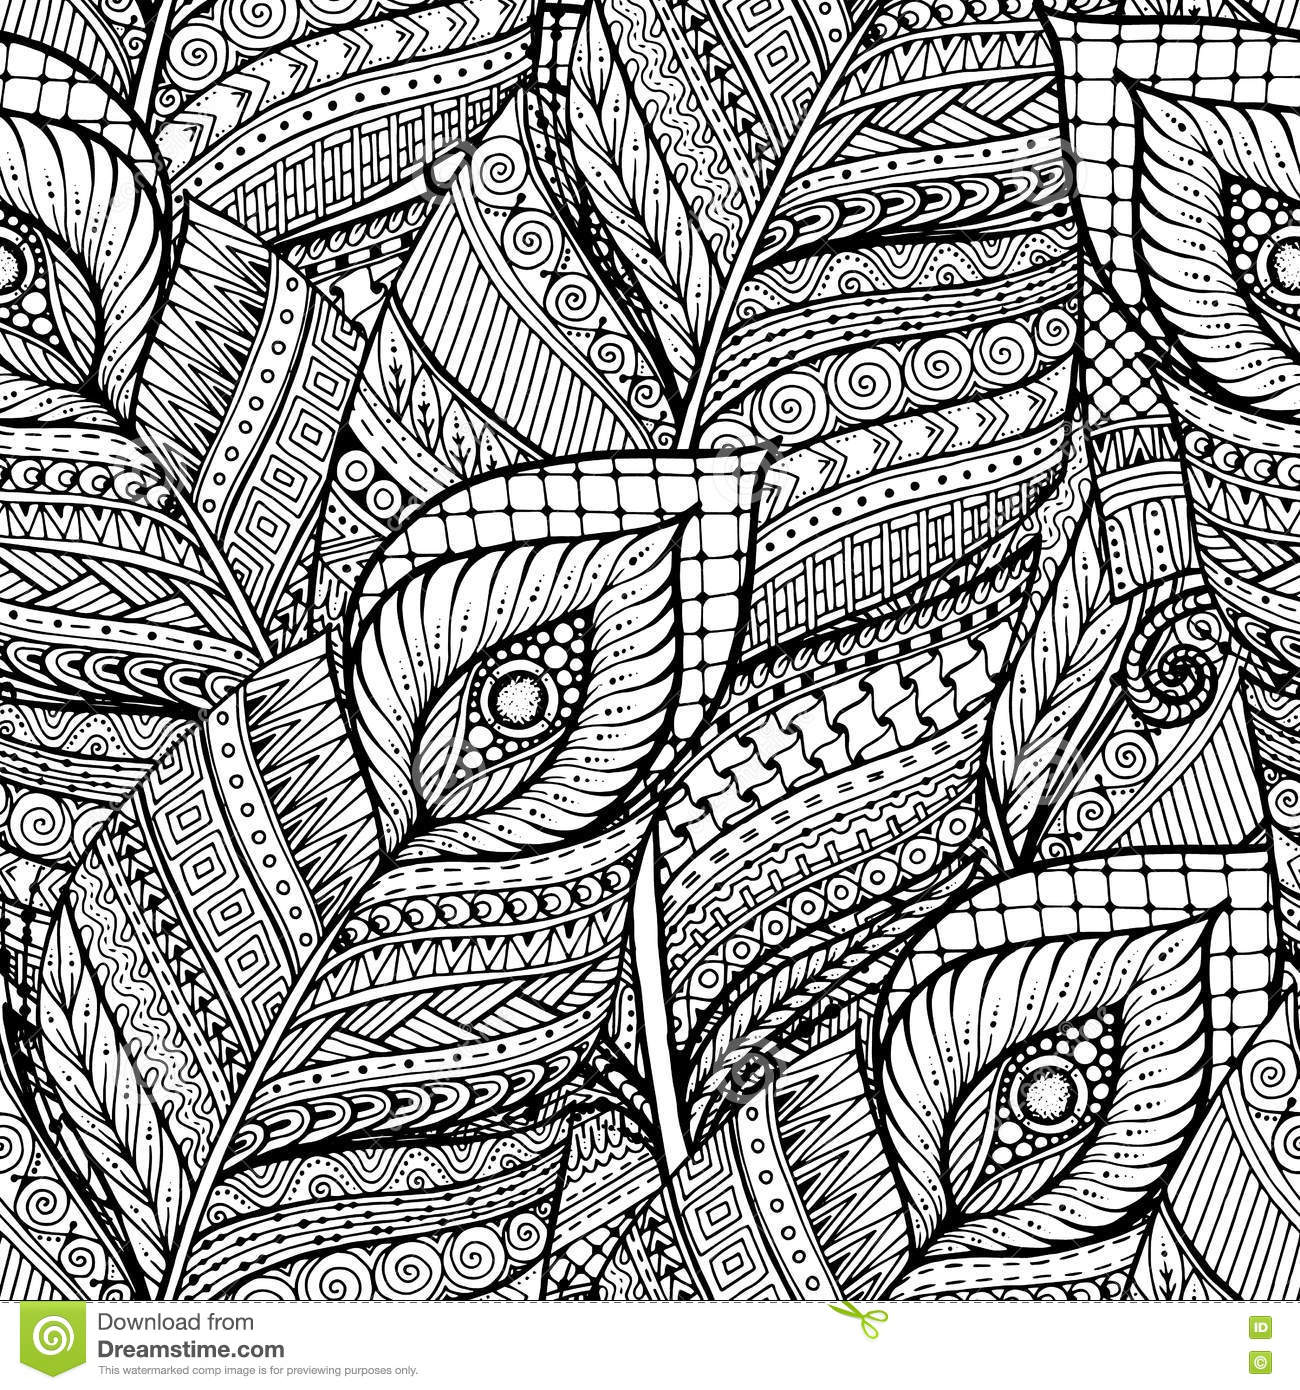 Seamless Asian Ethnic Floral Retro Doodle Black White